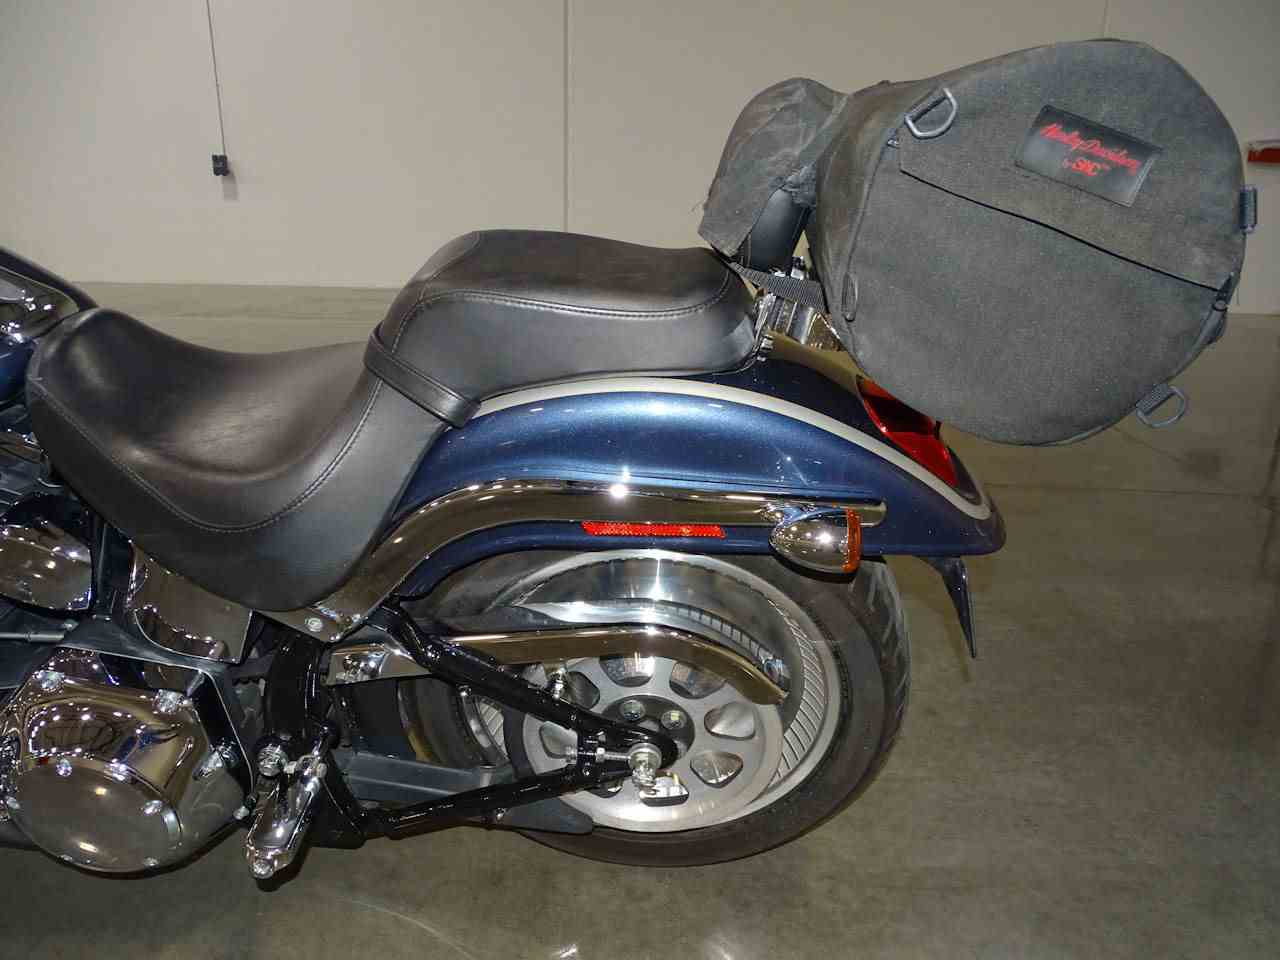 Large Picture of '03 Harley-Davidson FXSTDI located in Arizona Offered by Gateway Classic Cars - Scottsdale - MA4S